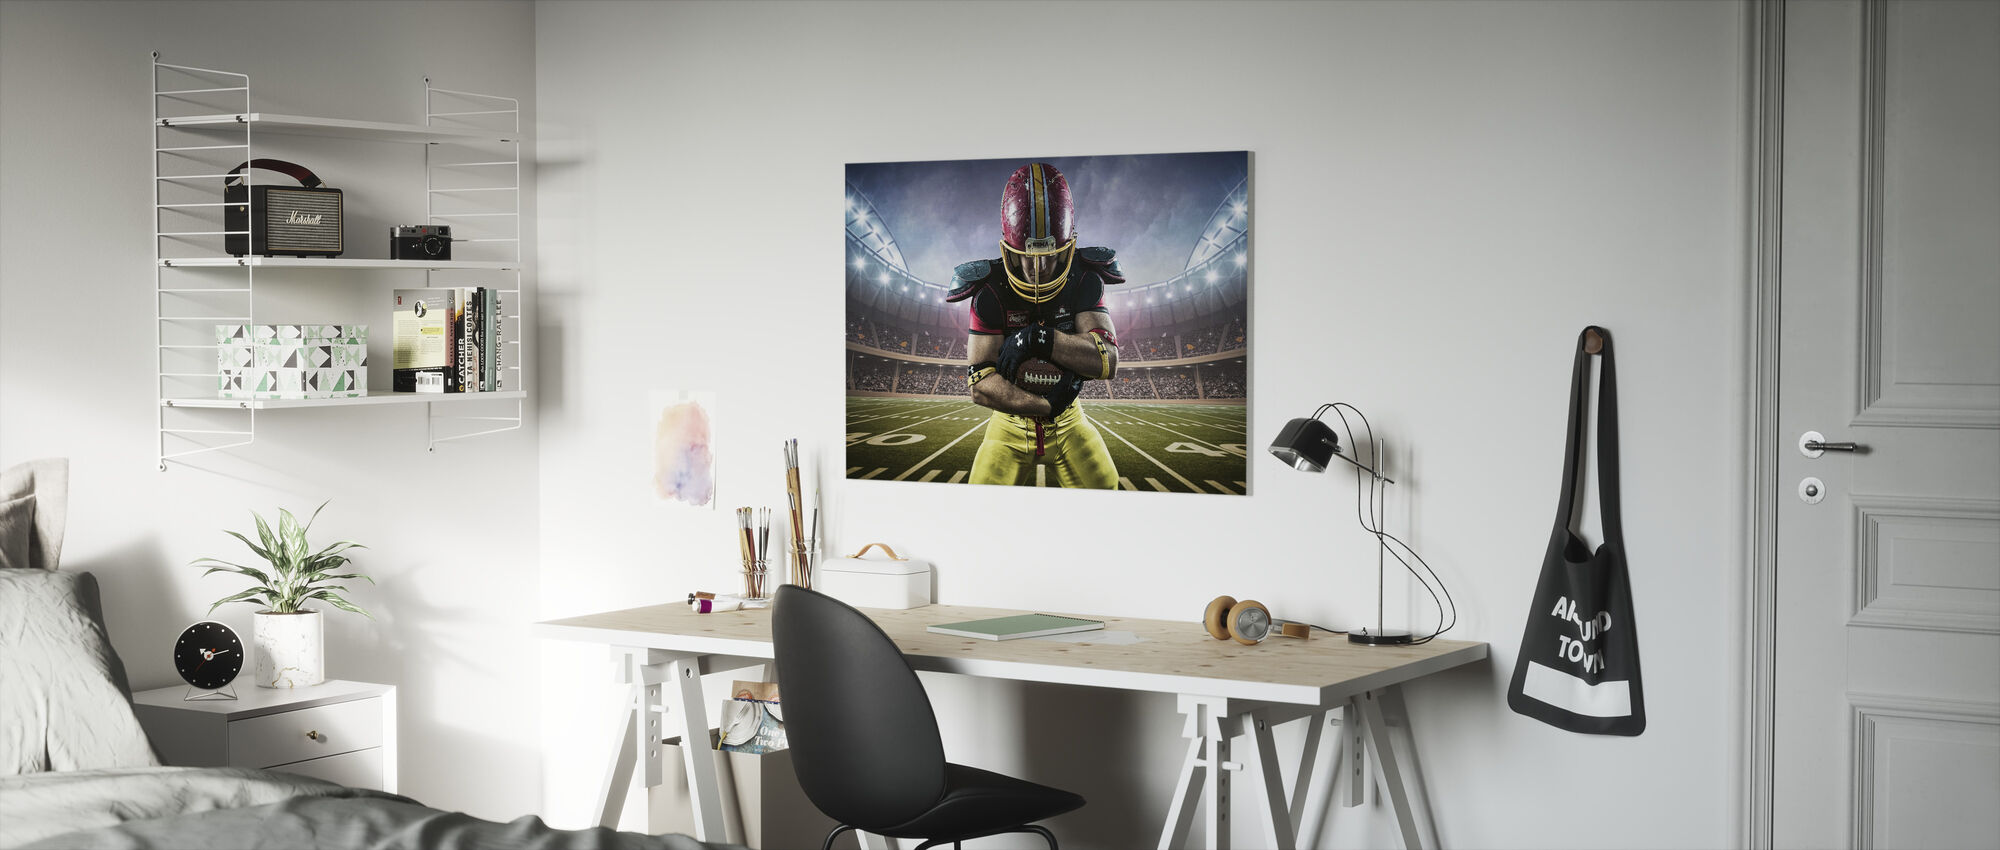 Danilo - Canvas print - Kinderkamer